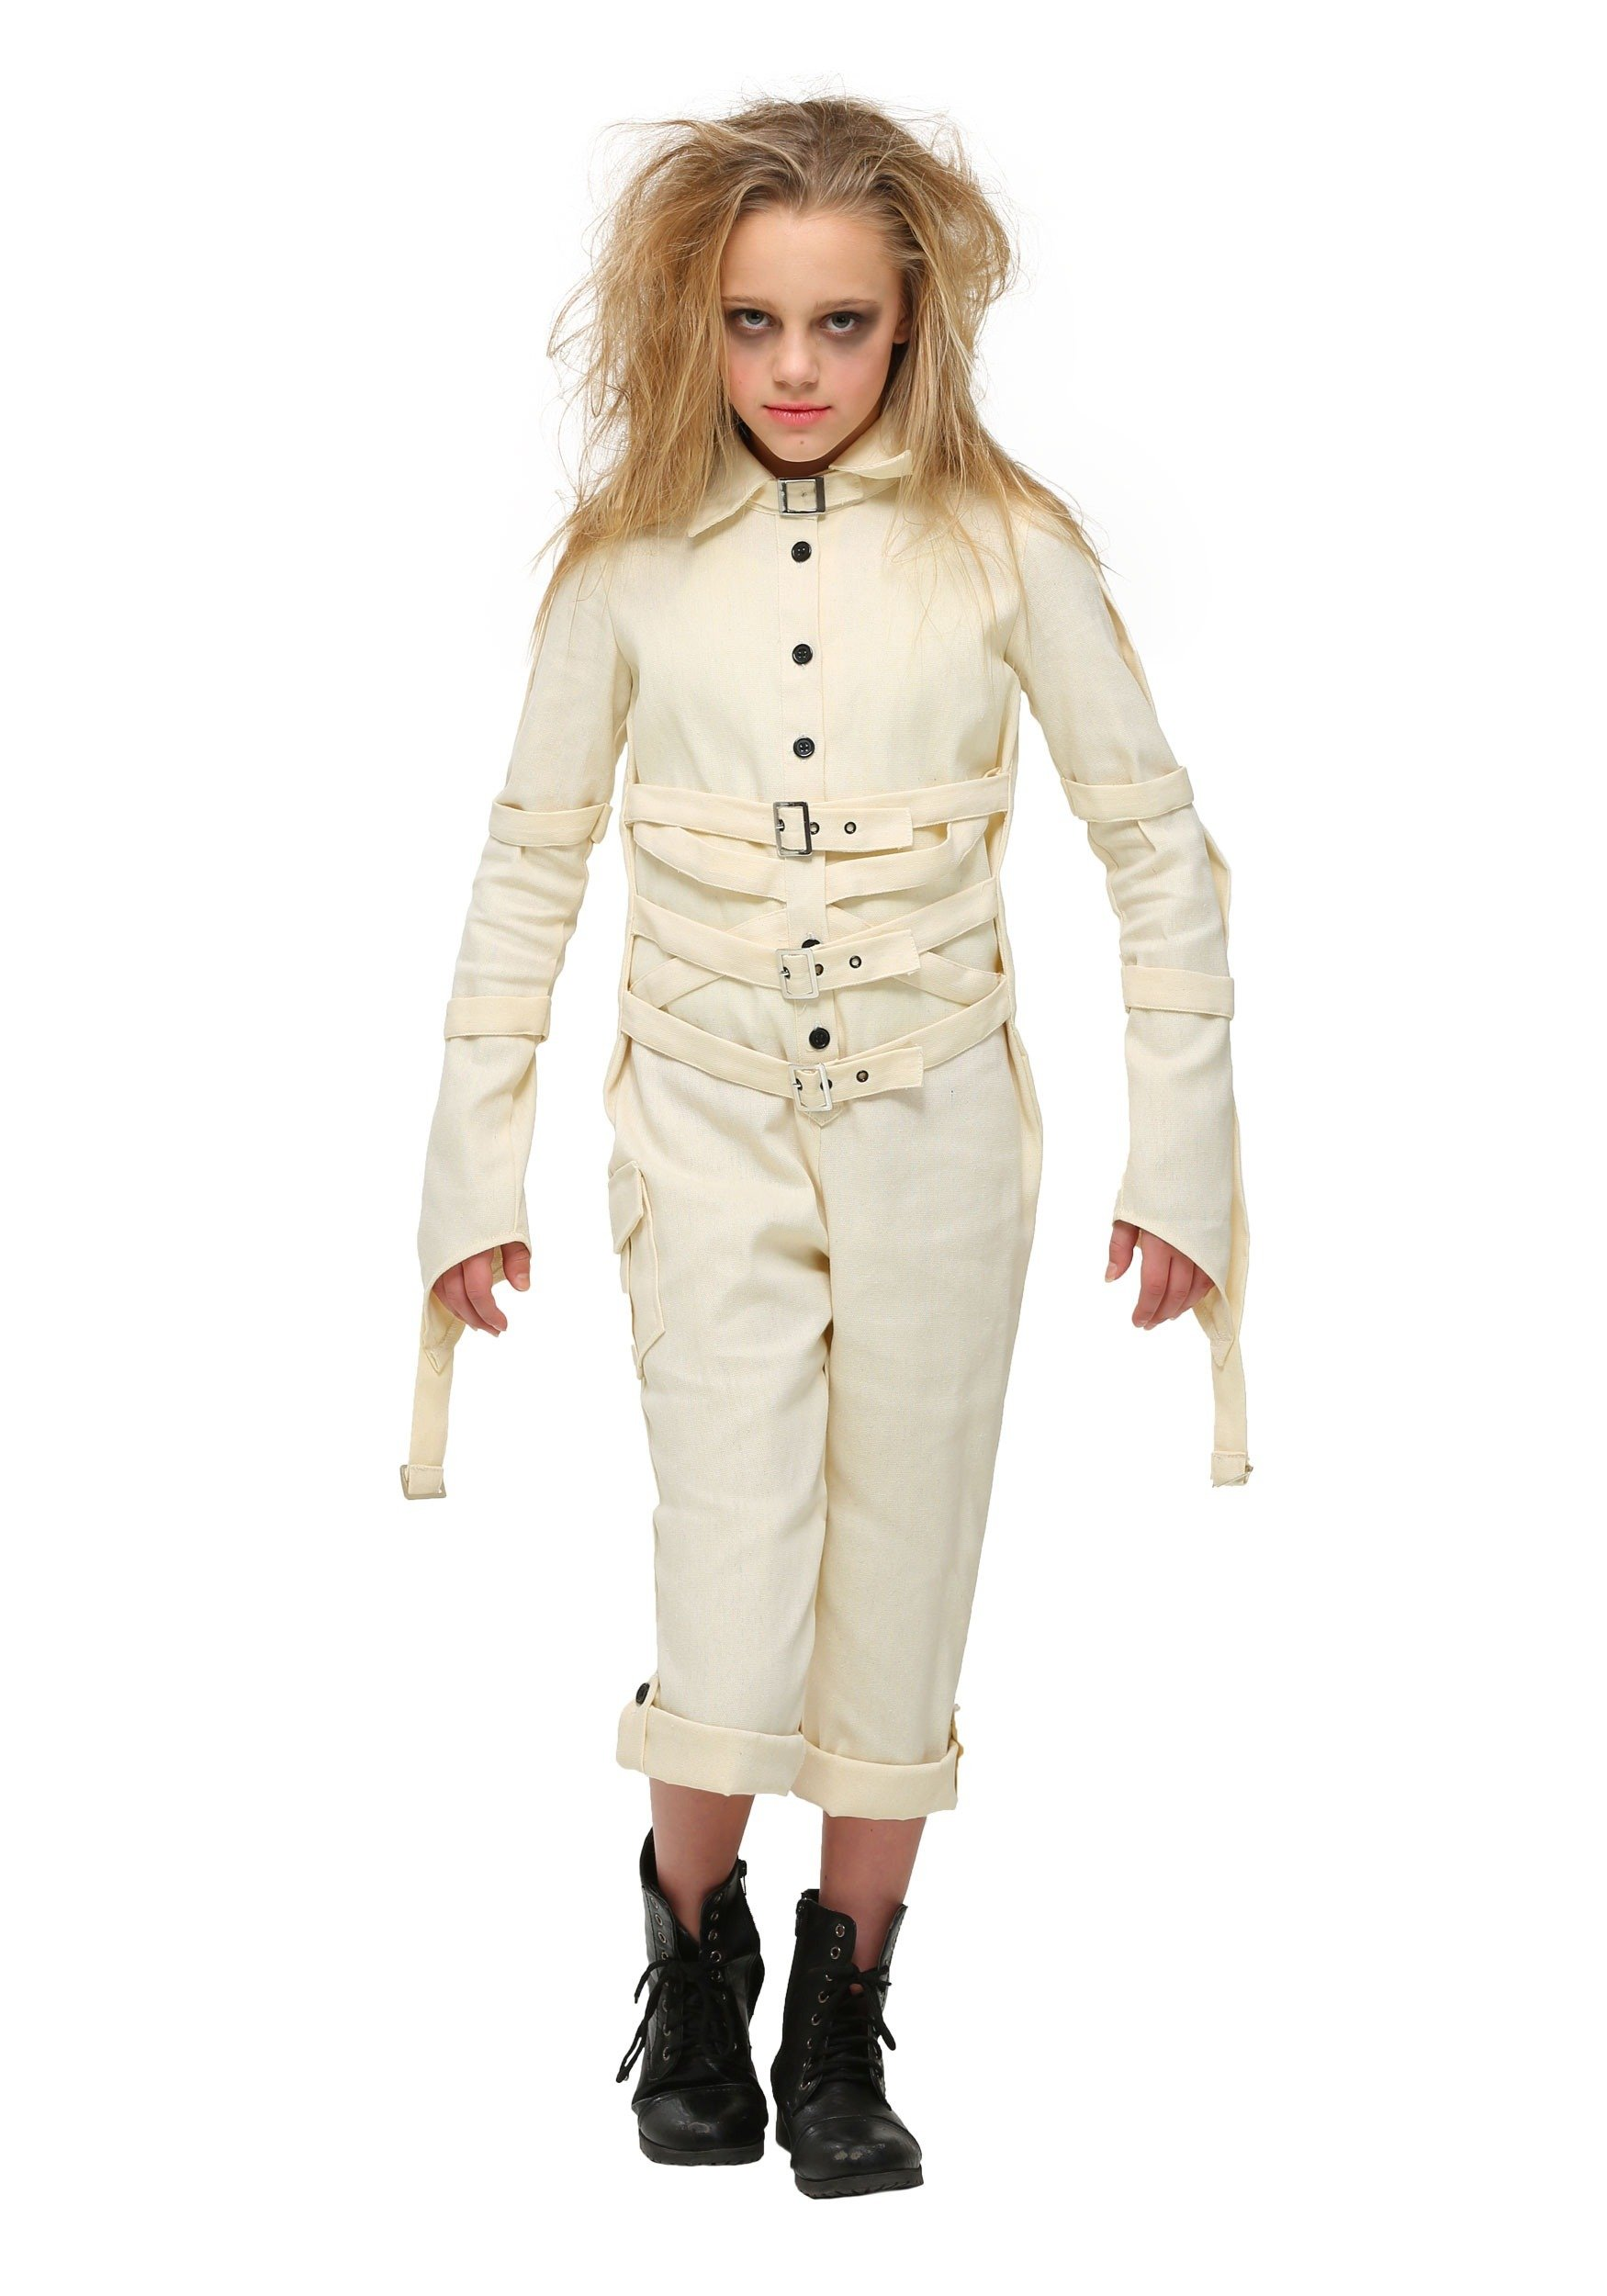 Fun Costumes Classic Straight Jacket Costume Medium by FunCostumes